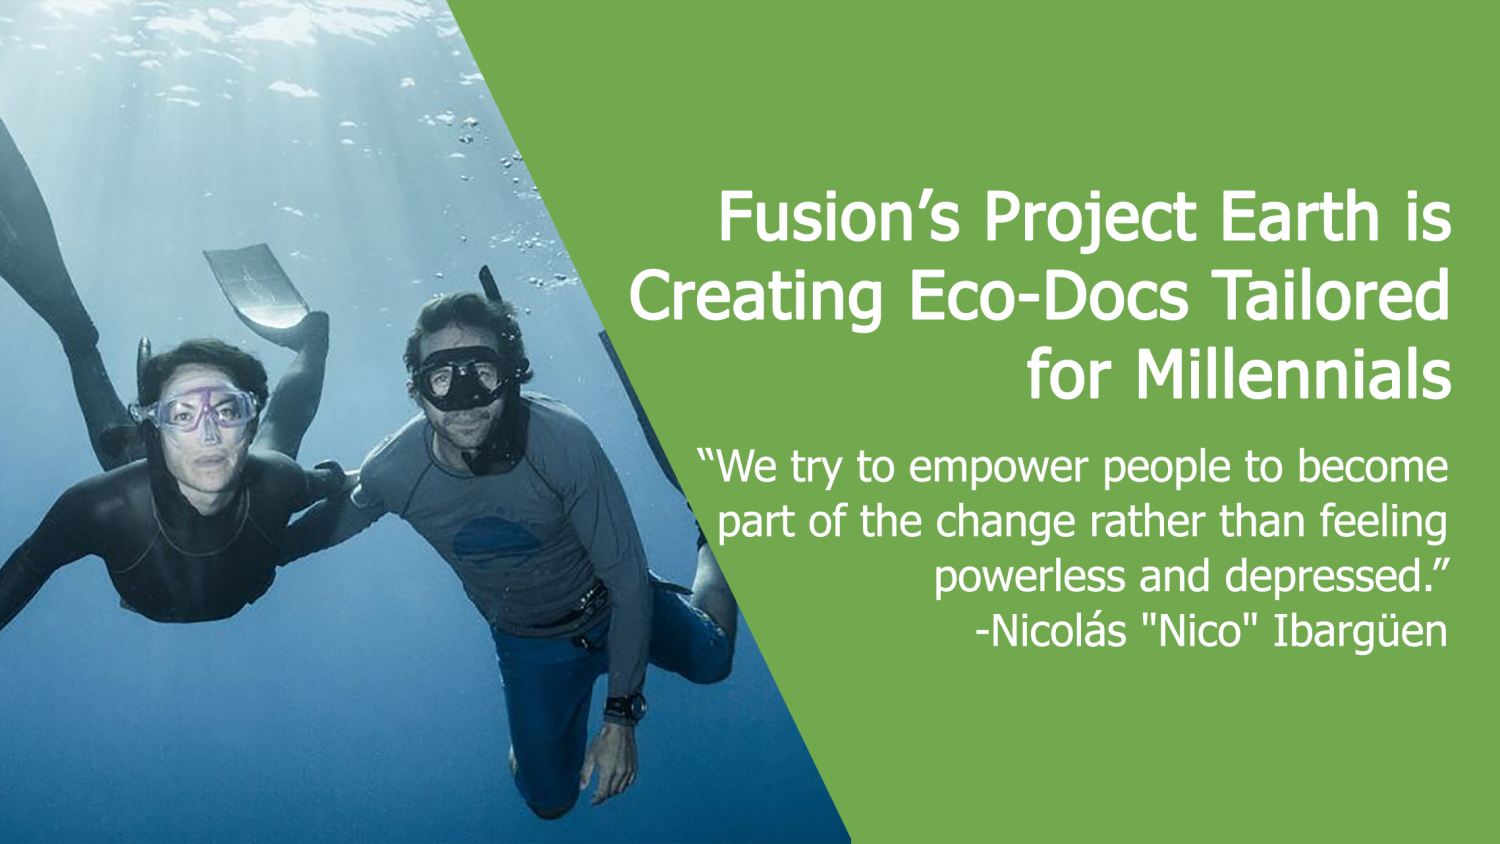 "Fusion's Project Earth is Creating Eco-Docs Tailored for Millennials: ""We try to empower people to become part of the change rather than feeling powerless and depressed."" -Nicolás ""Nico"" Ibargüen"